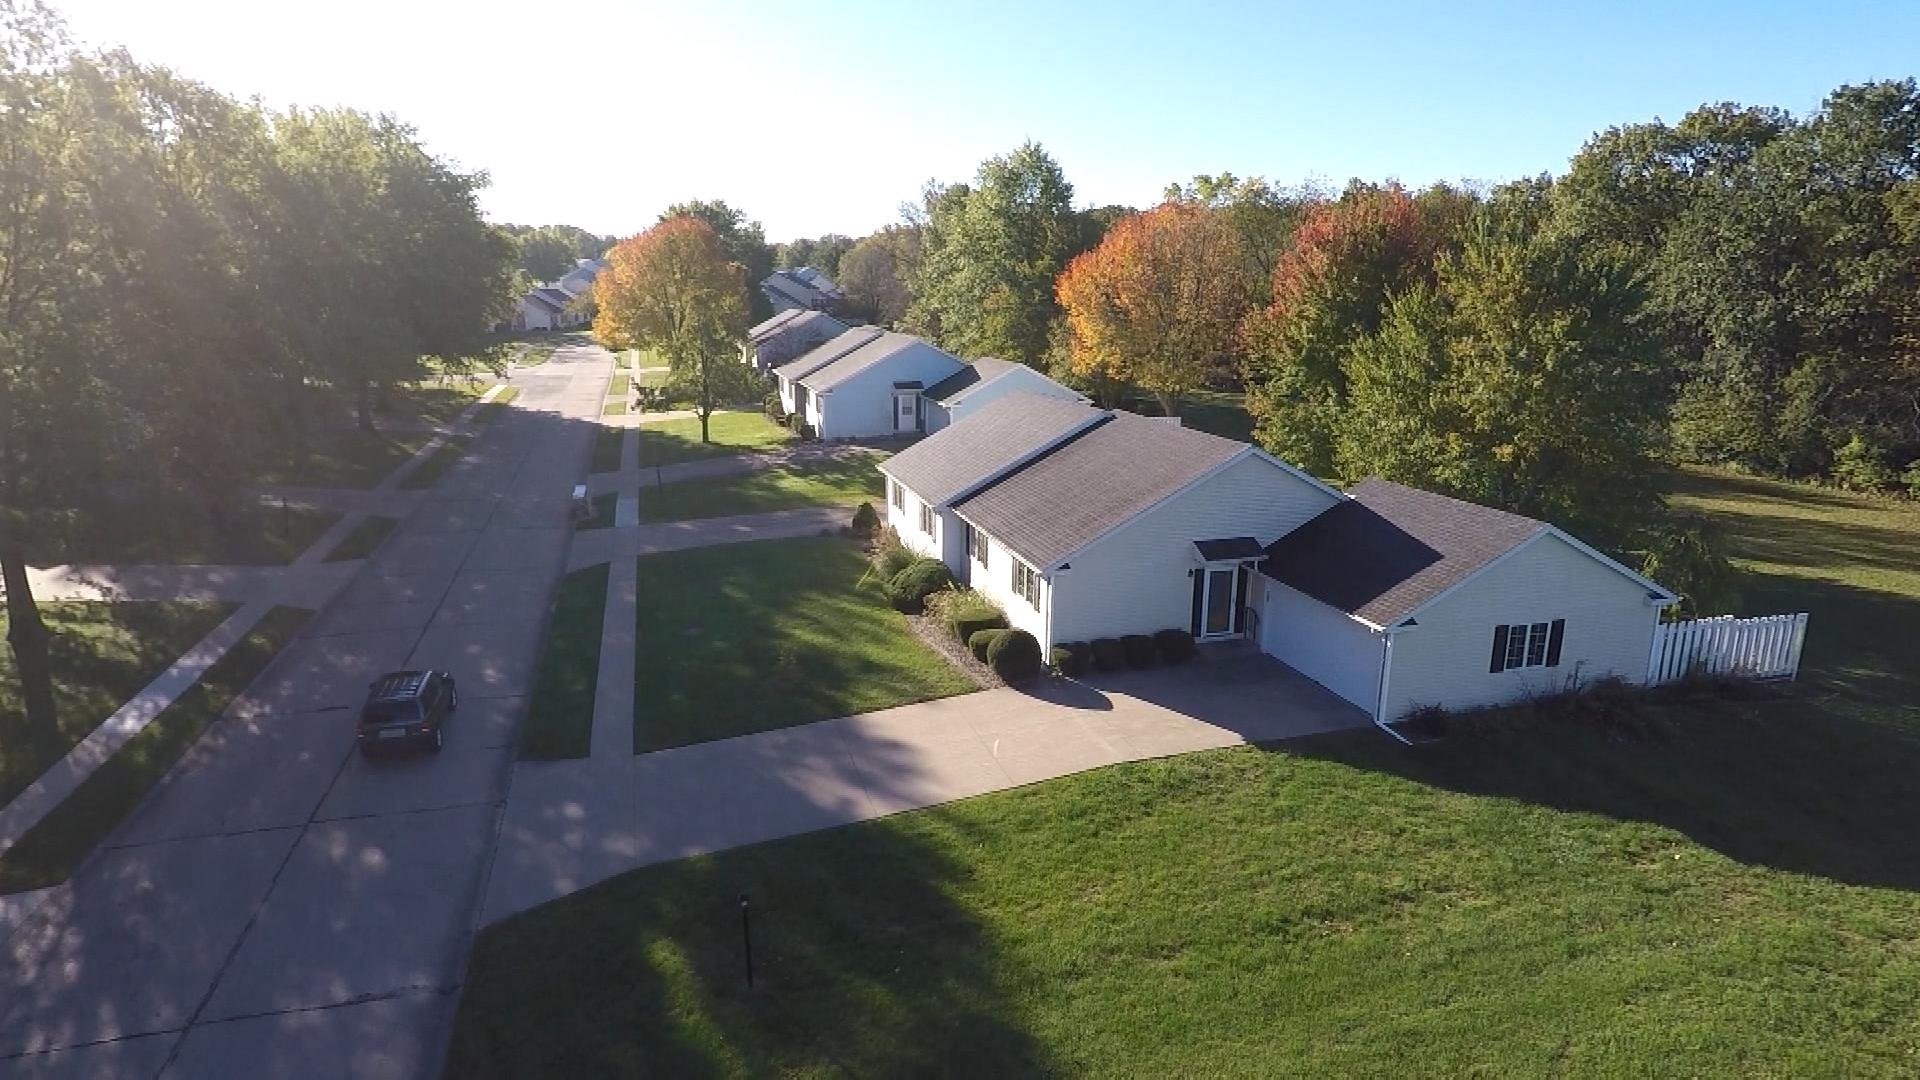 An aerial view from the WGEM News drone of the Georgetown subdivision, just outside  Macomb city limits. The subdivision has more than a dozen townhomes up for sale.